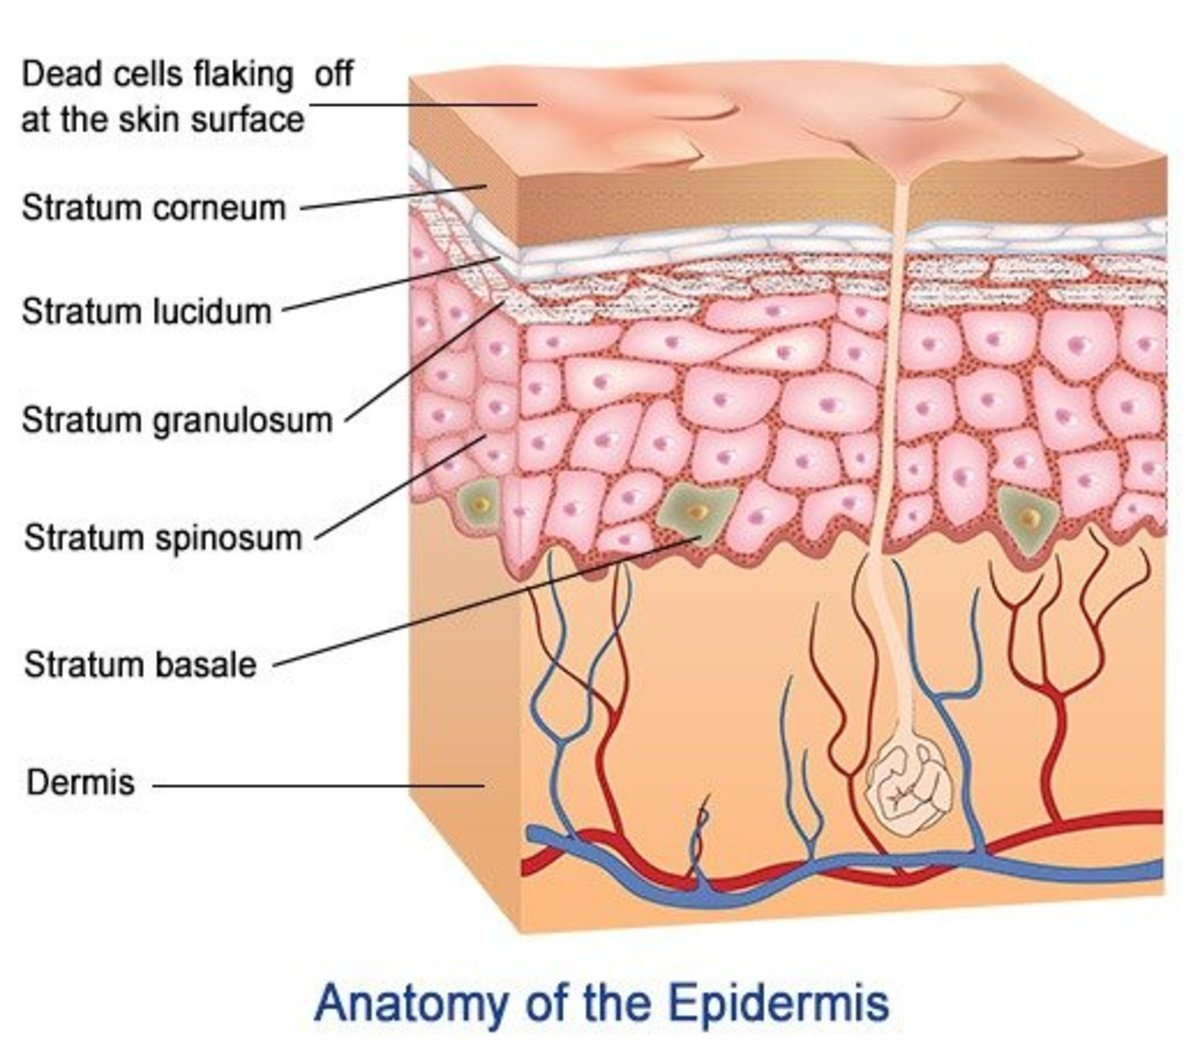 5 Layers And Cells of the Epidermis